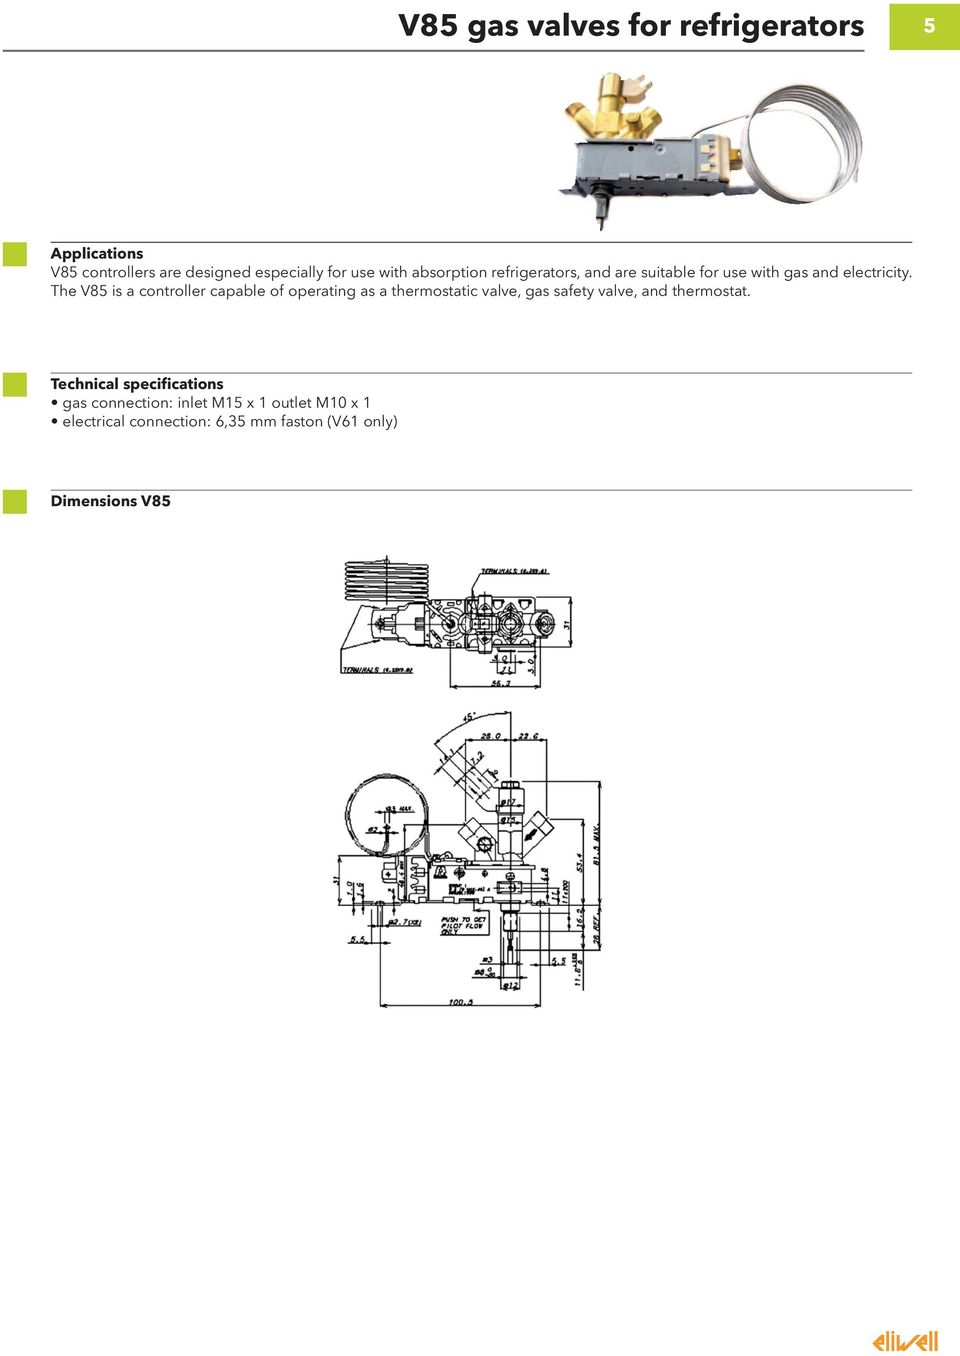 hight resolution of ranco thermostat wiring diagram g1 wiring library house thermostat wiring diagrams ranco thermostat wiring diagram g1